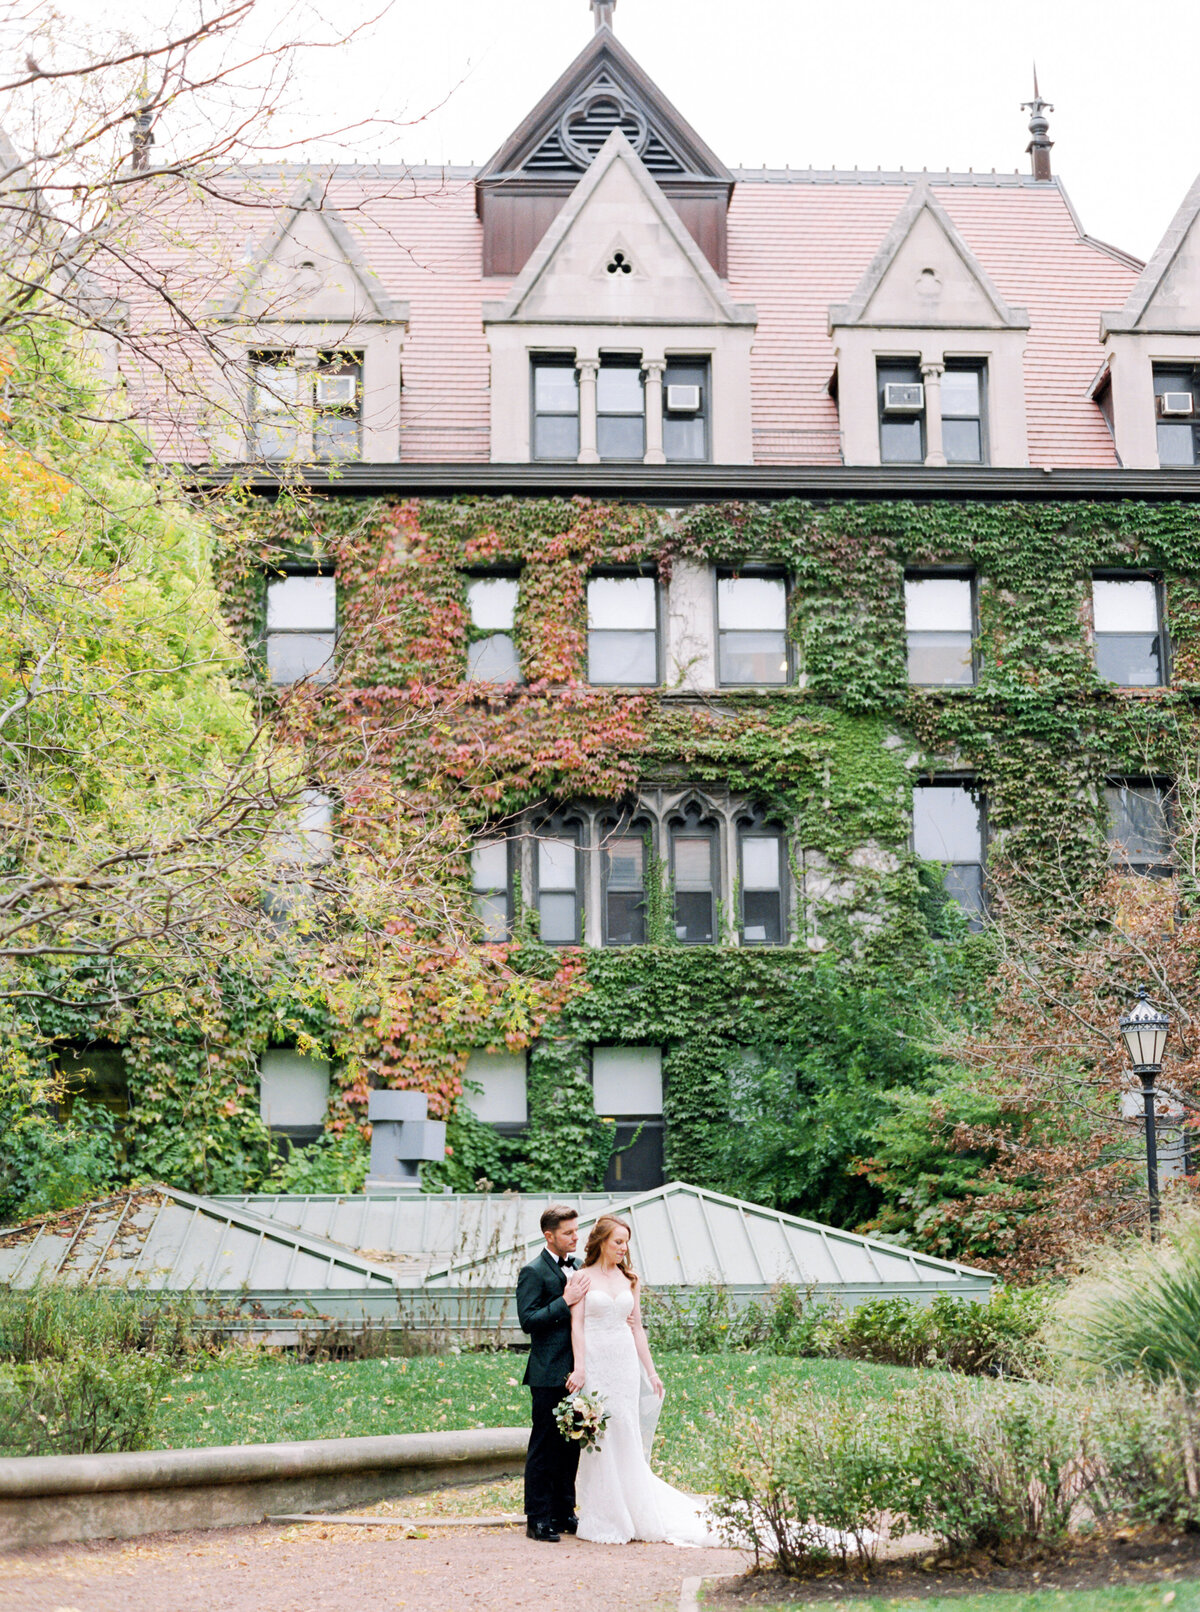 TiffaneyChildsPhotography-ChicagoWeddingPhotographer-Colleen&Ned-UniversityofChicago-133